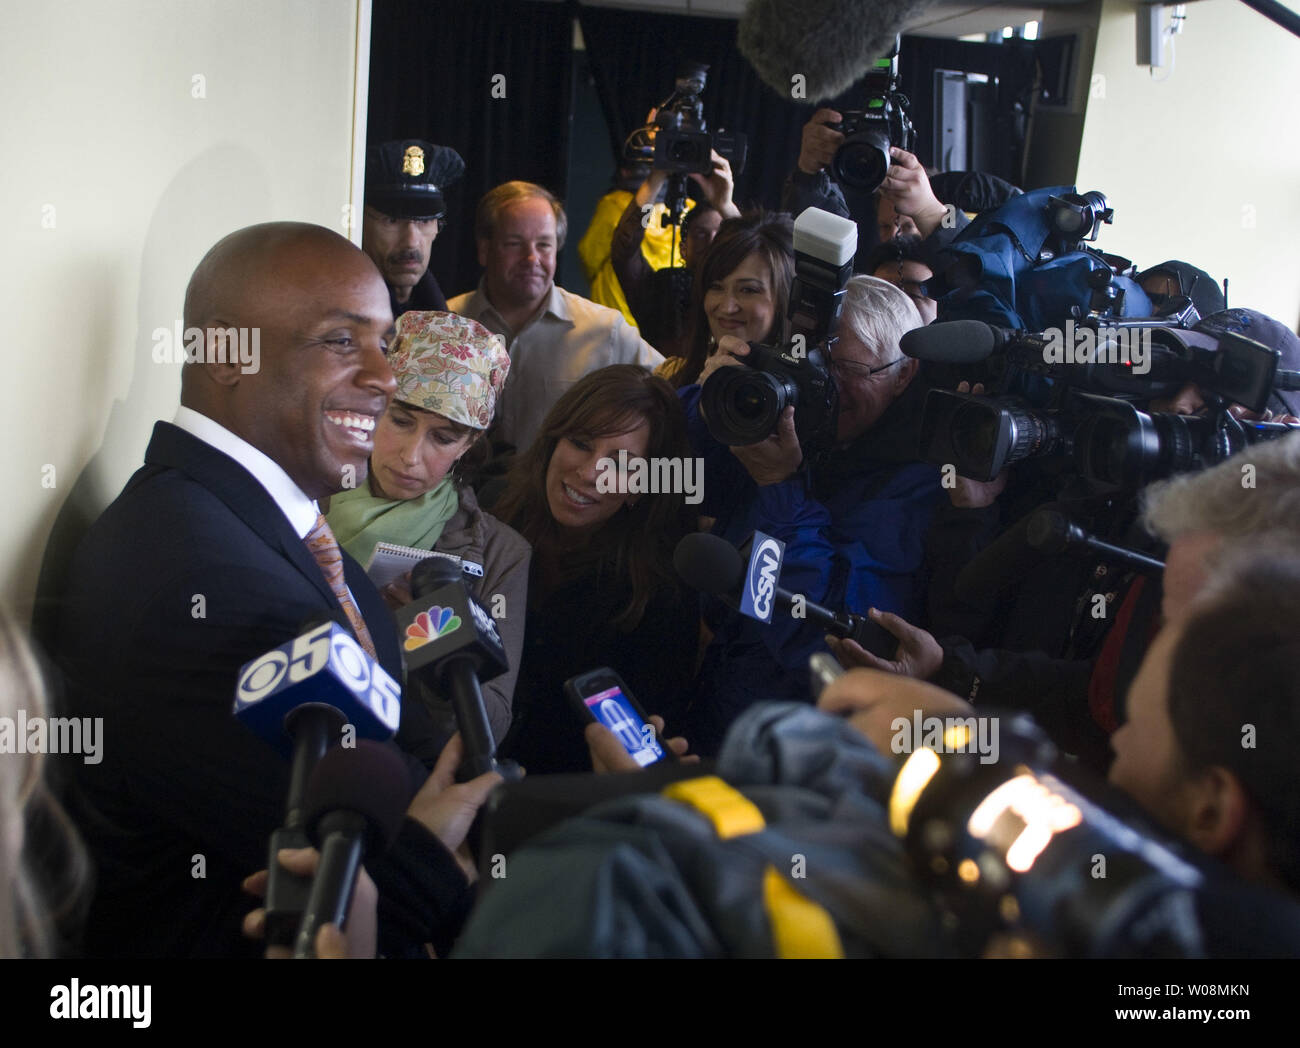 Retired home run king Barry Bonds faces a gaggle of